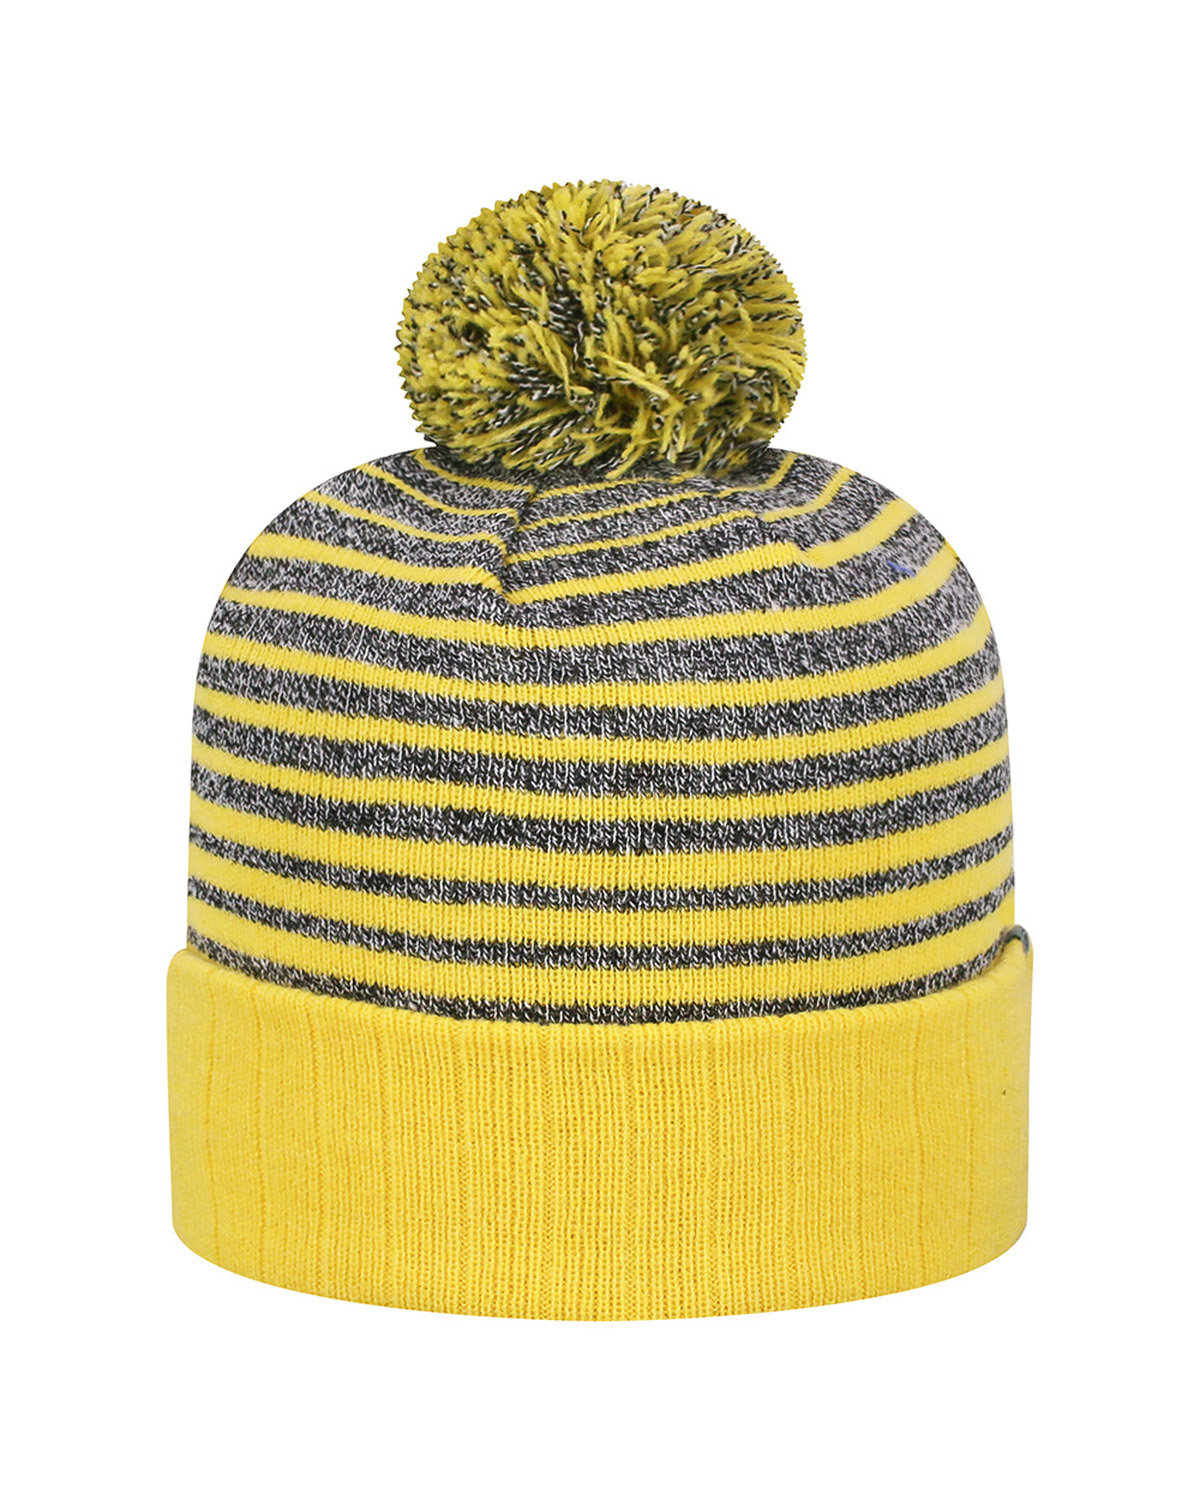 Top Of The World Adult Ritz Knit Cap GOLD